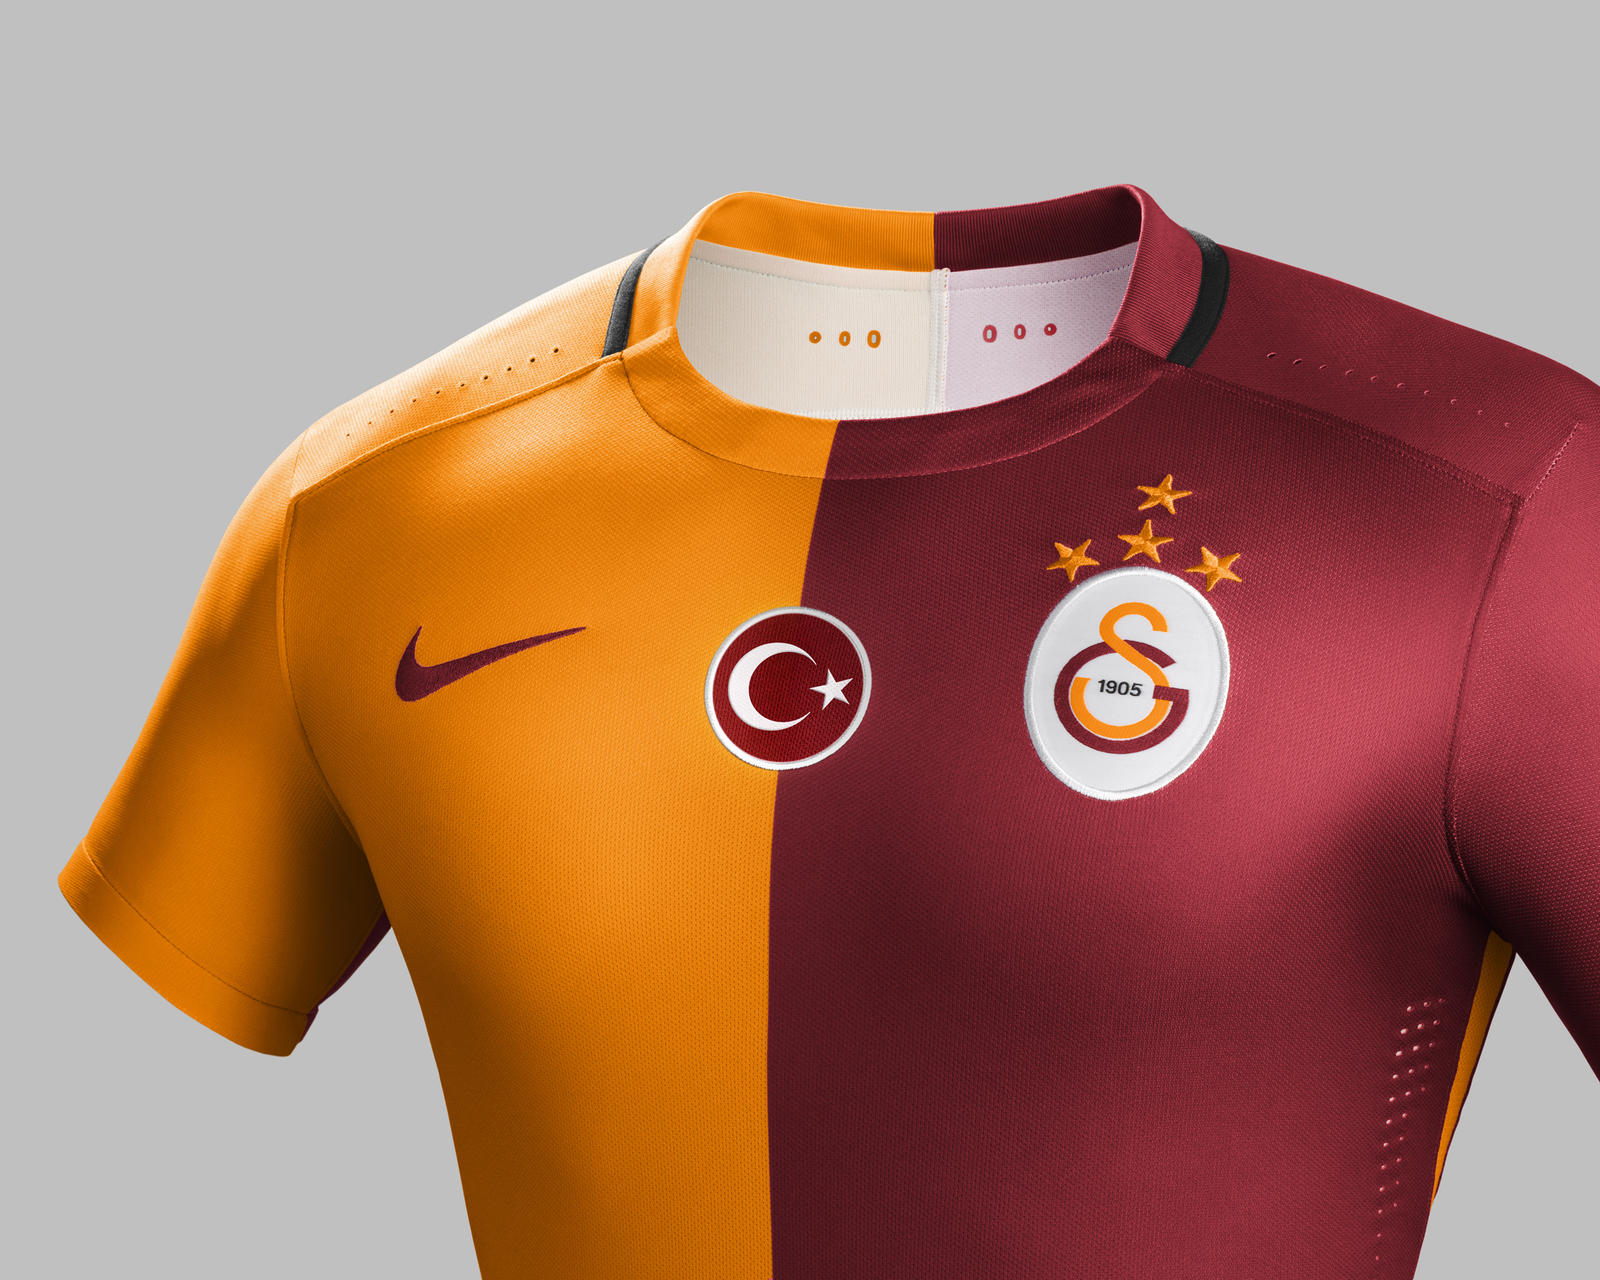 512x512 galatasaray home kit pictures free download - Share Image The Home Kit Also Honors